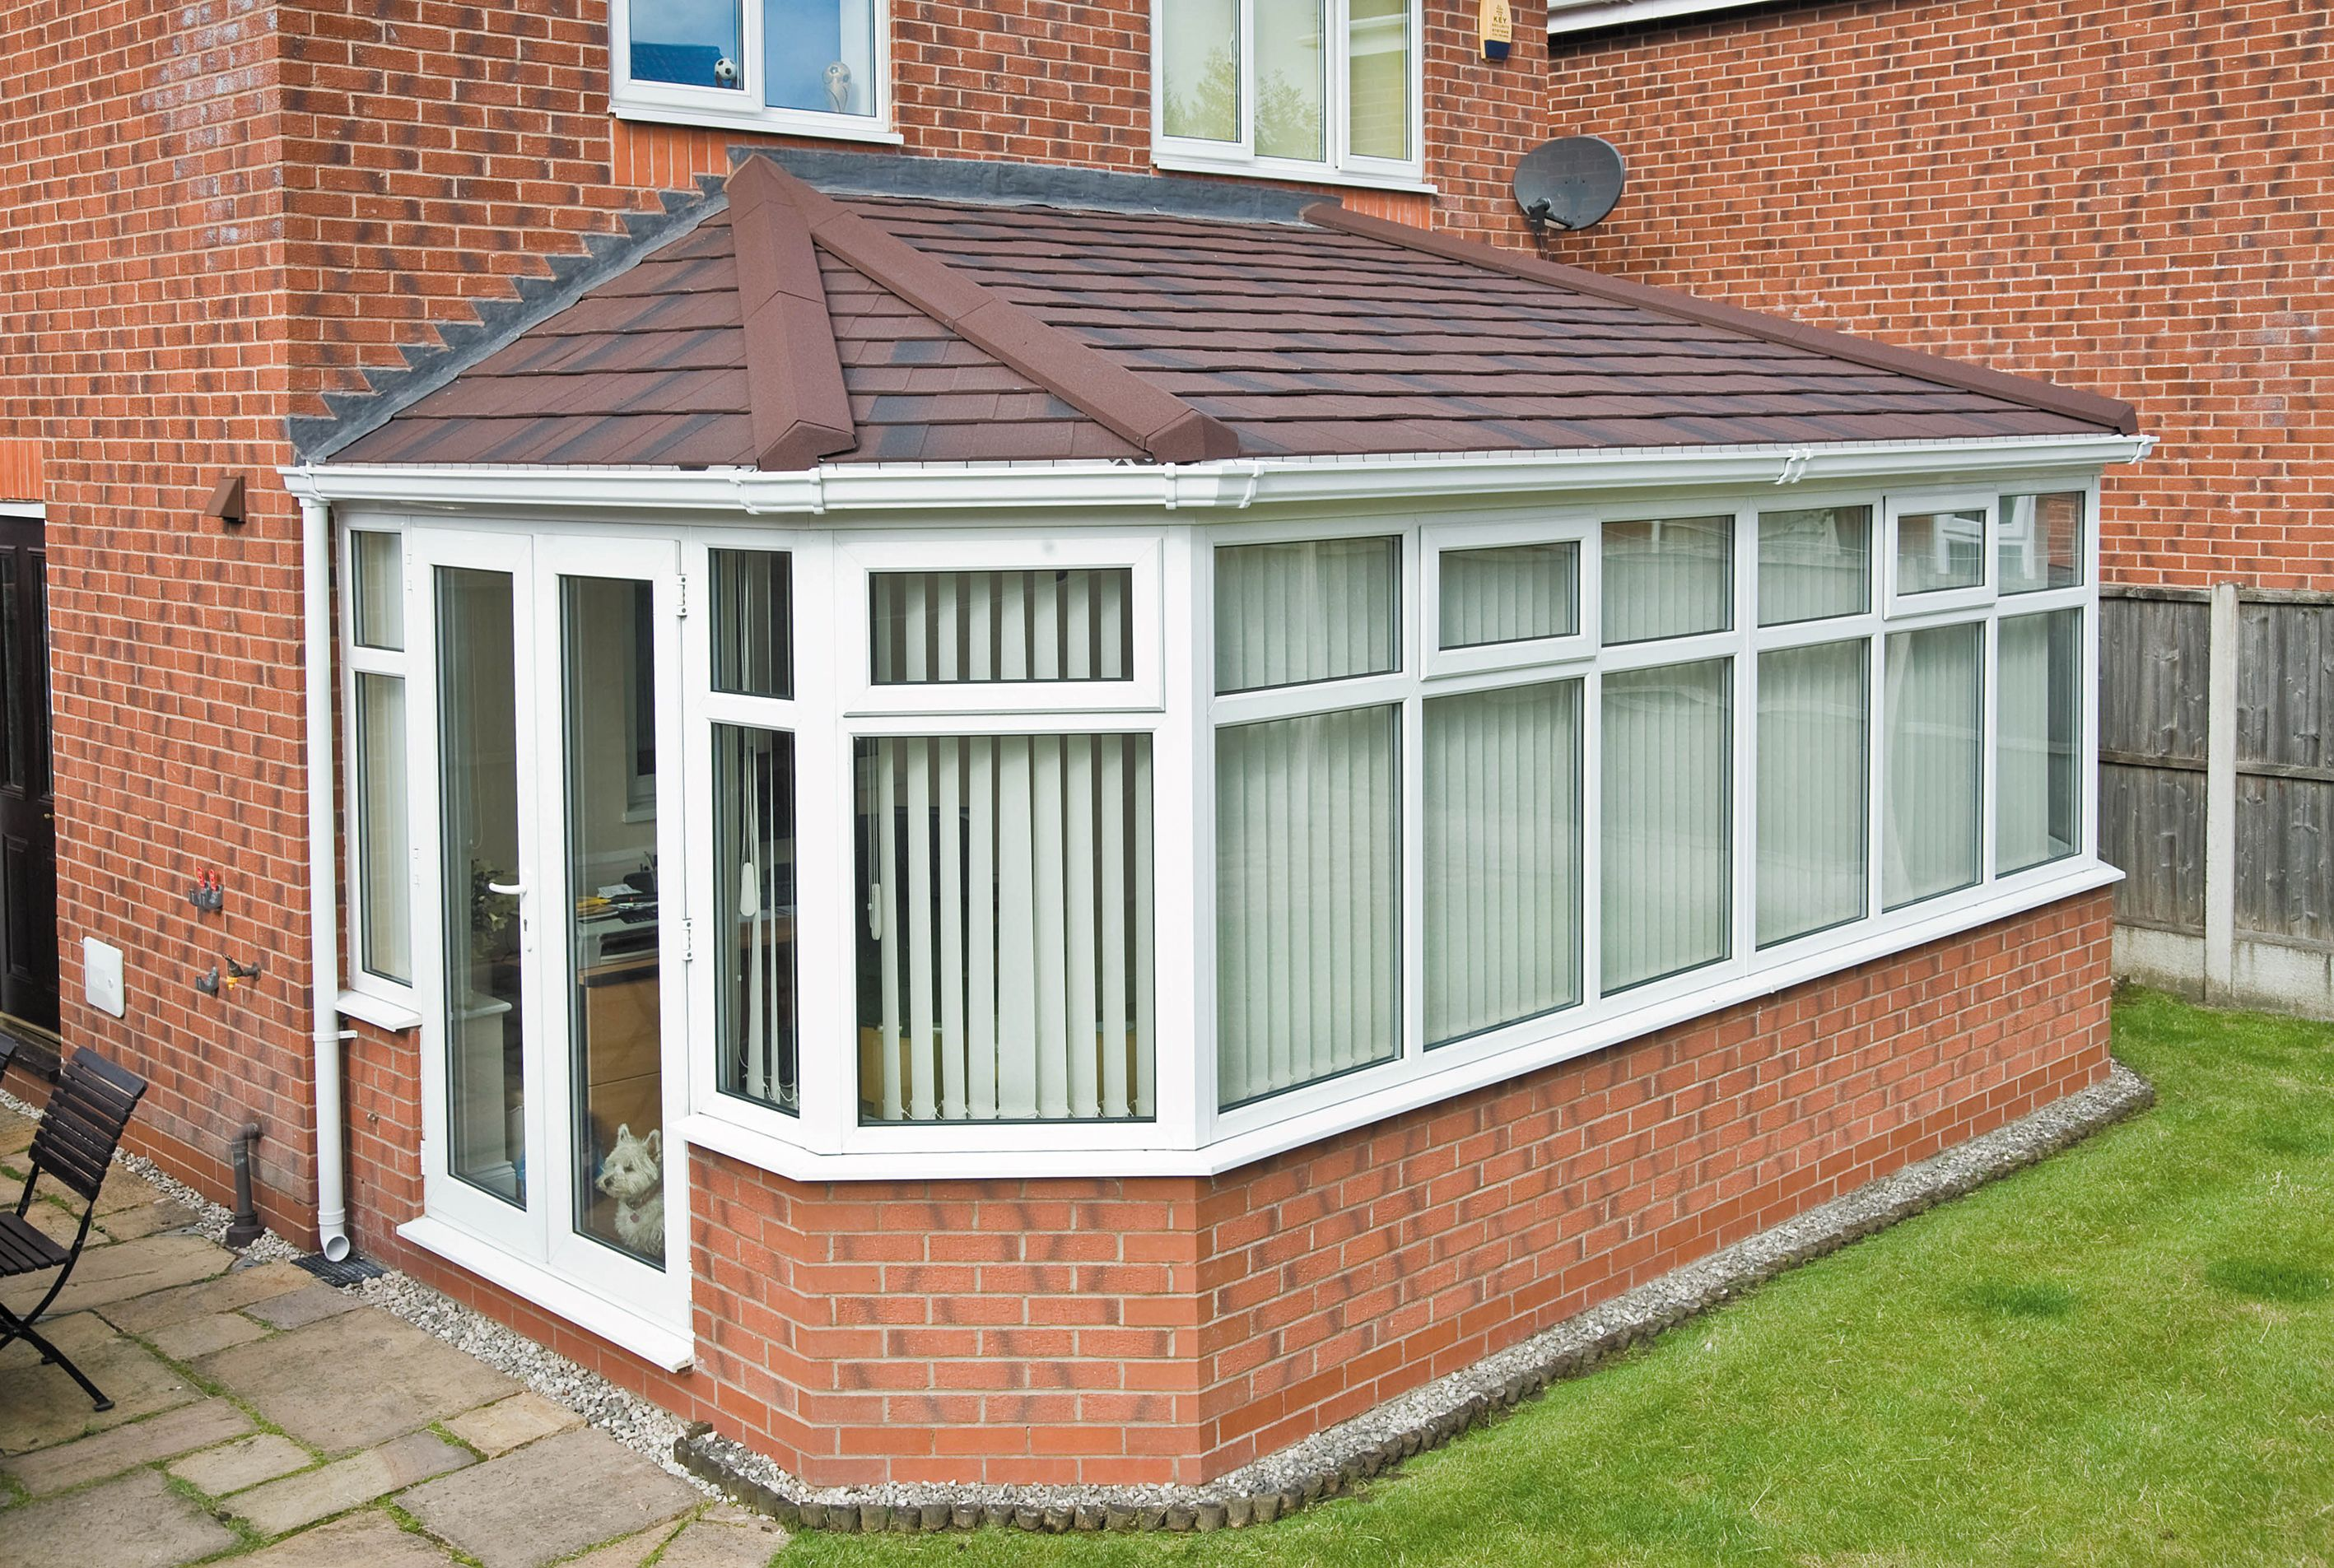 A Very Good Looking Double Hipped Lean To Conservatory Roof Finished With Metrotile Burnt Umber Til Lean To Roof Contemporary Garden Rooms Lean To Conservatory